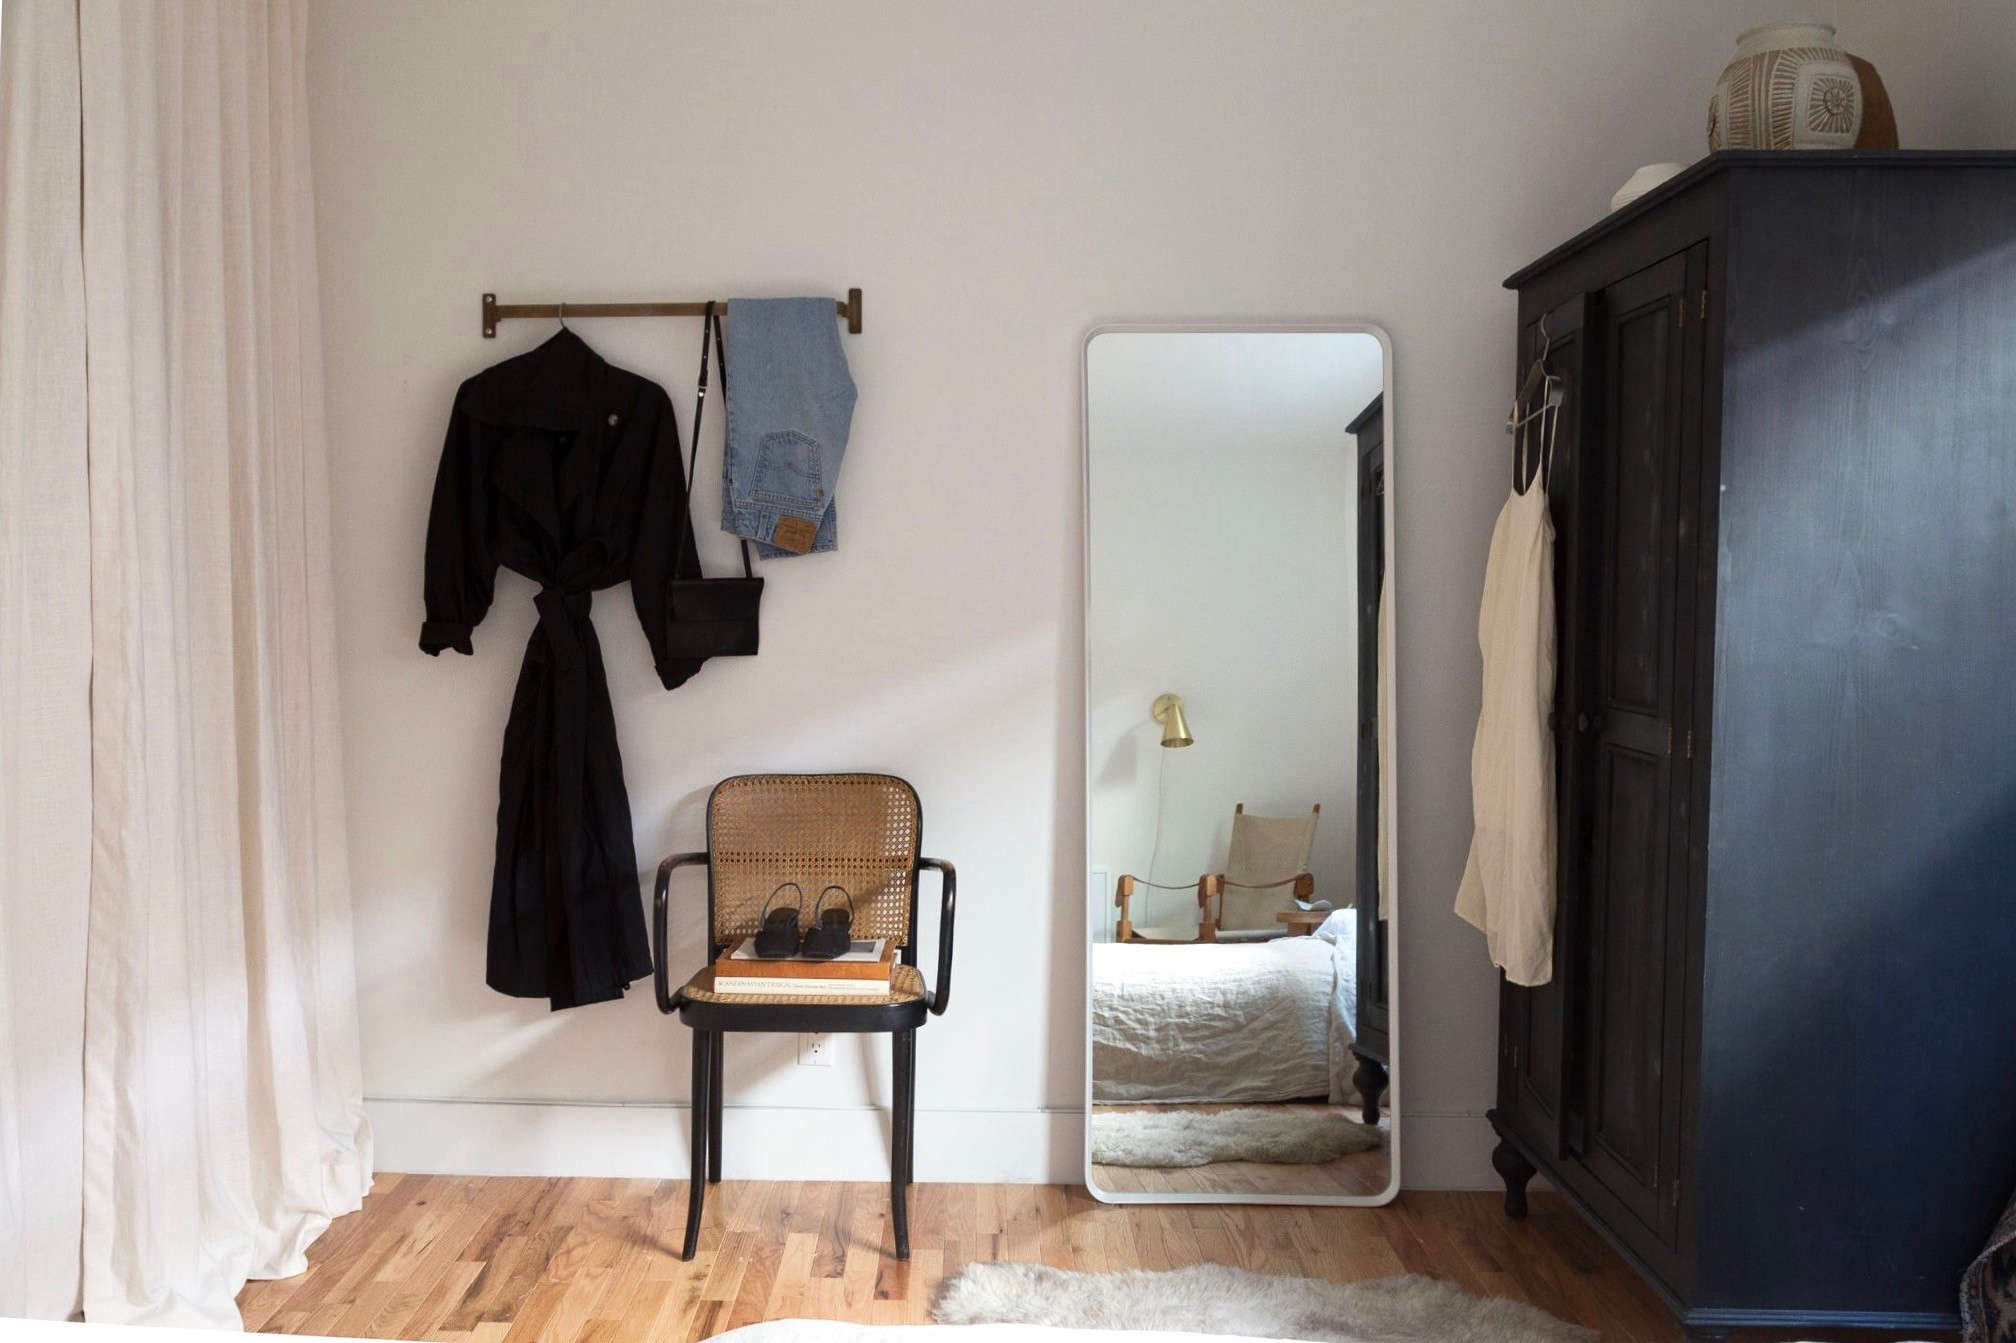 Expert Advice: 9 Tips for Creating the Illusion of Space - The Organized Home